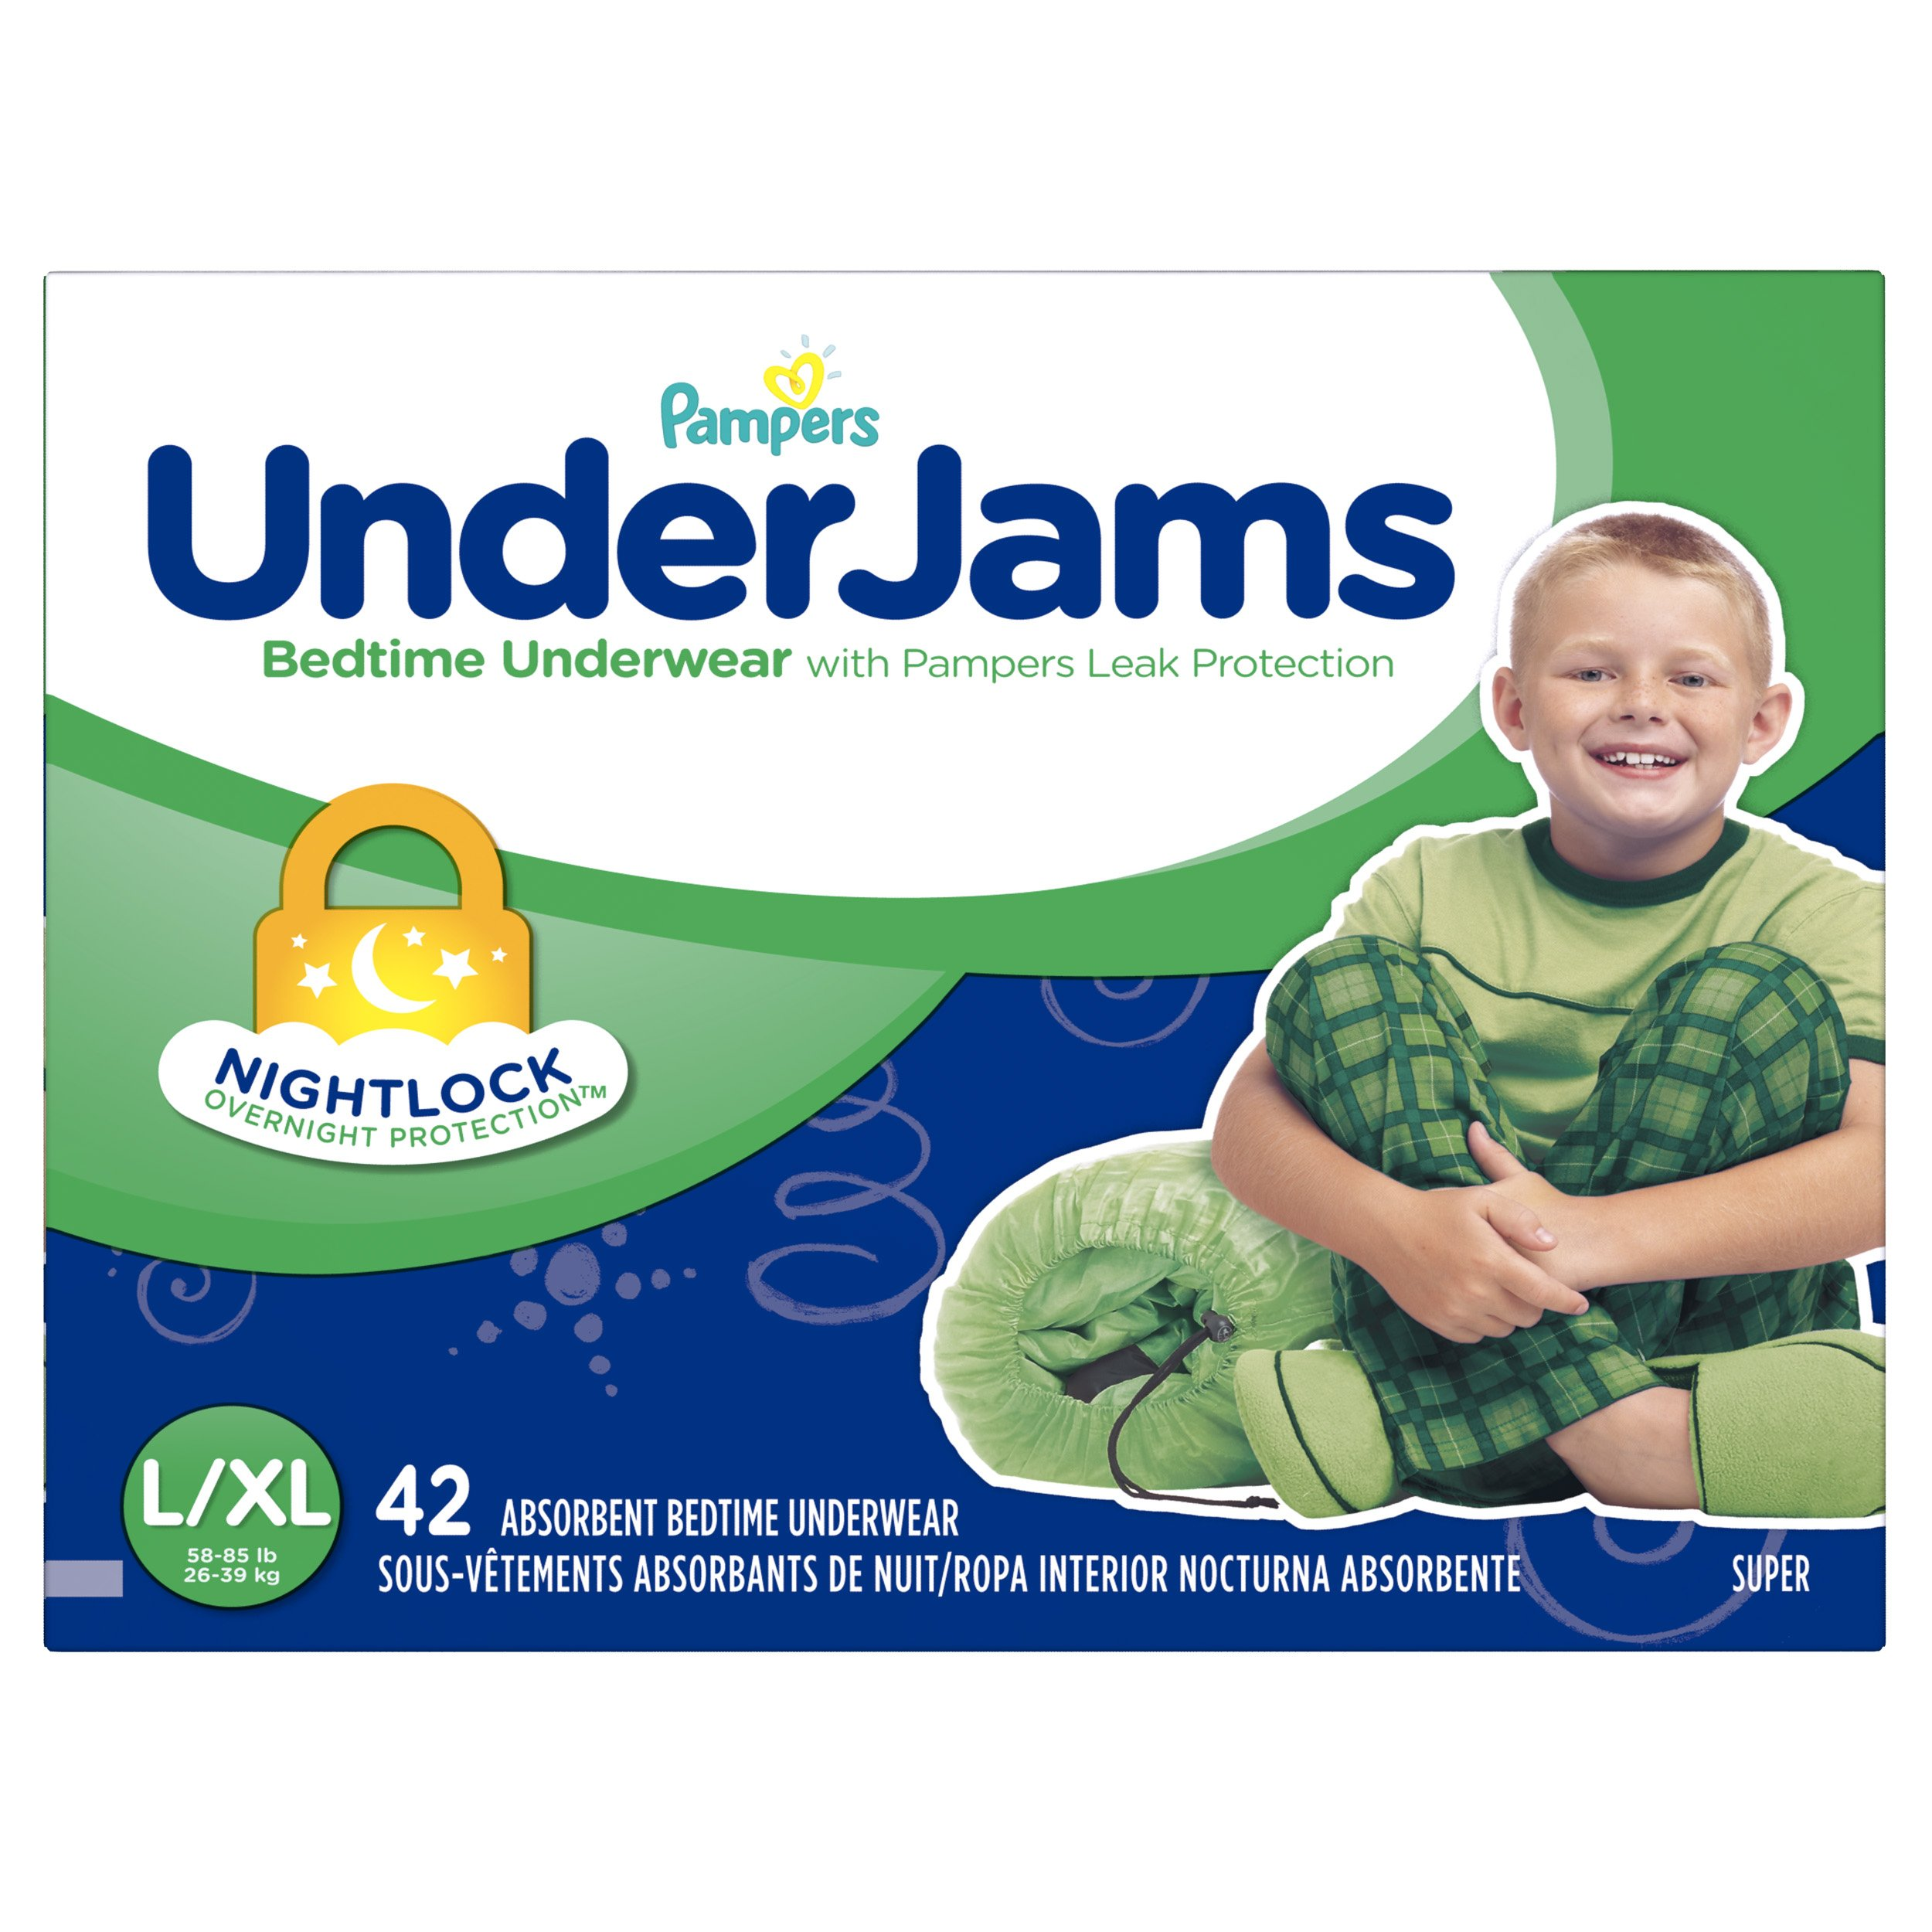 Pampers UnderJams Disposable Bedtime Underwear for Boys, Size L/XL, 42 Count, Super Pack